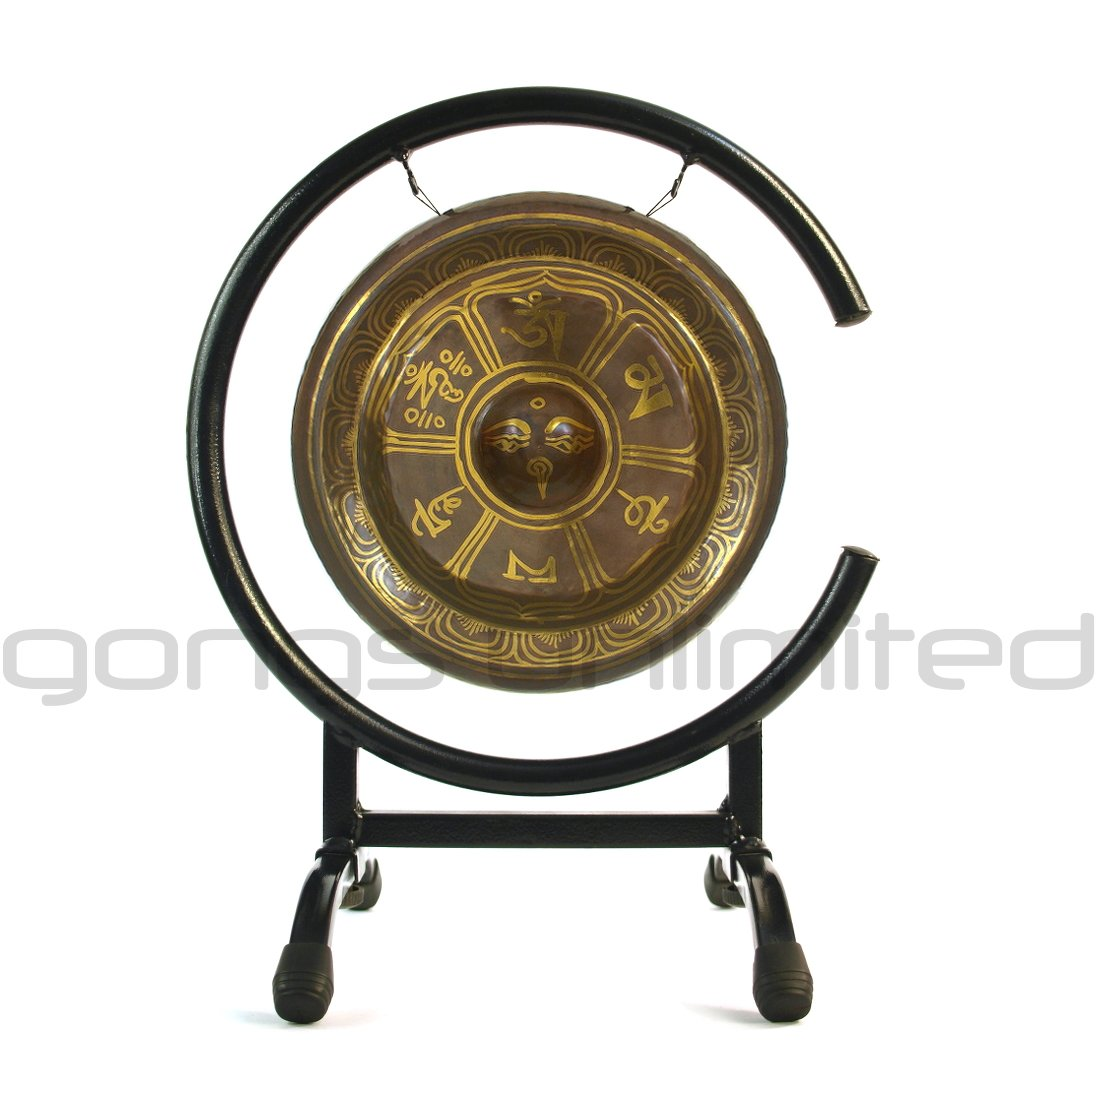 tibetan rising gong stands gongs unlimited high stand drum accent table black glass living room tables teak small farm barn wood furniture metal reducer strip resin wicker